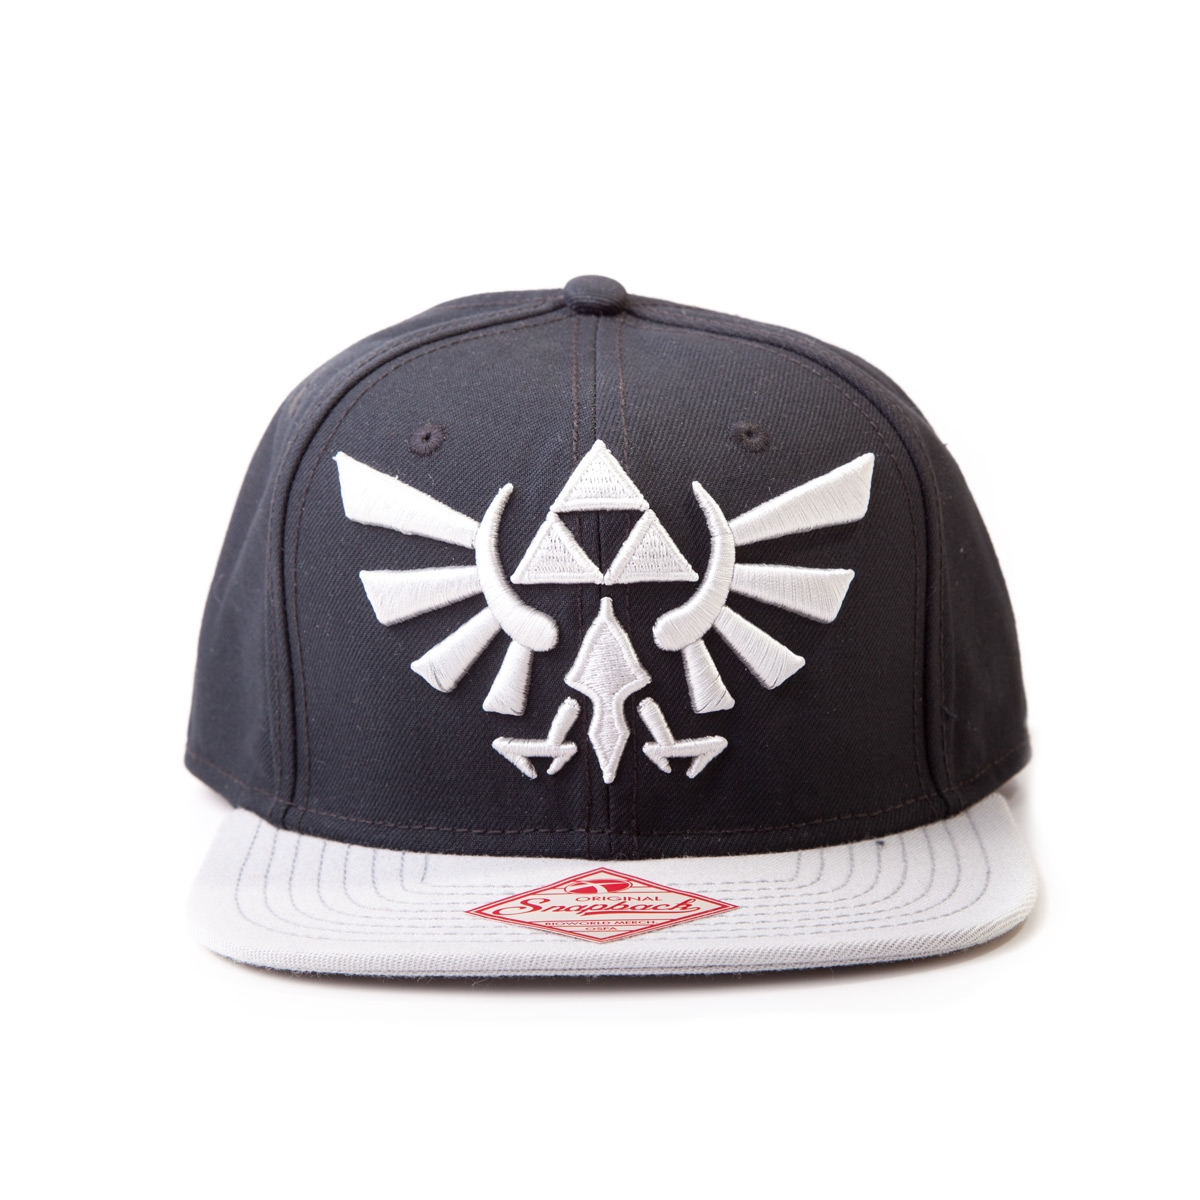 Alternative photo: Zelda Black Snapback Cap